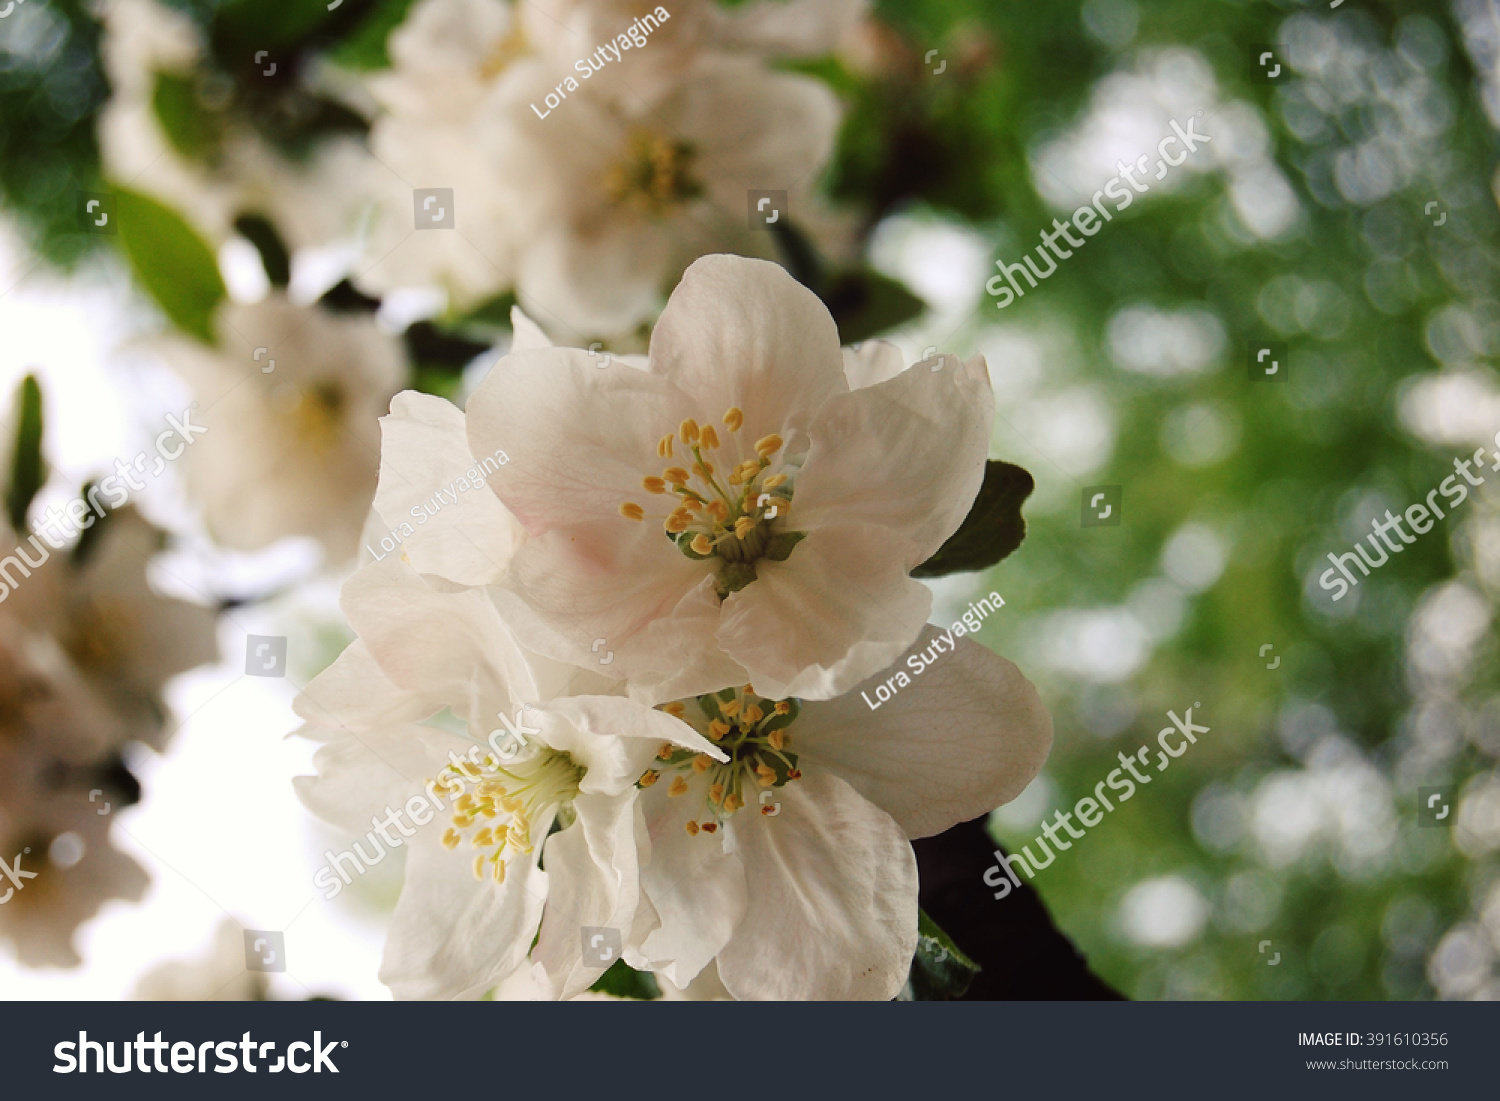 Apple Flowers Bloom Aged Photo Flowers Stock Photo Royalty Free